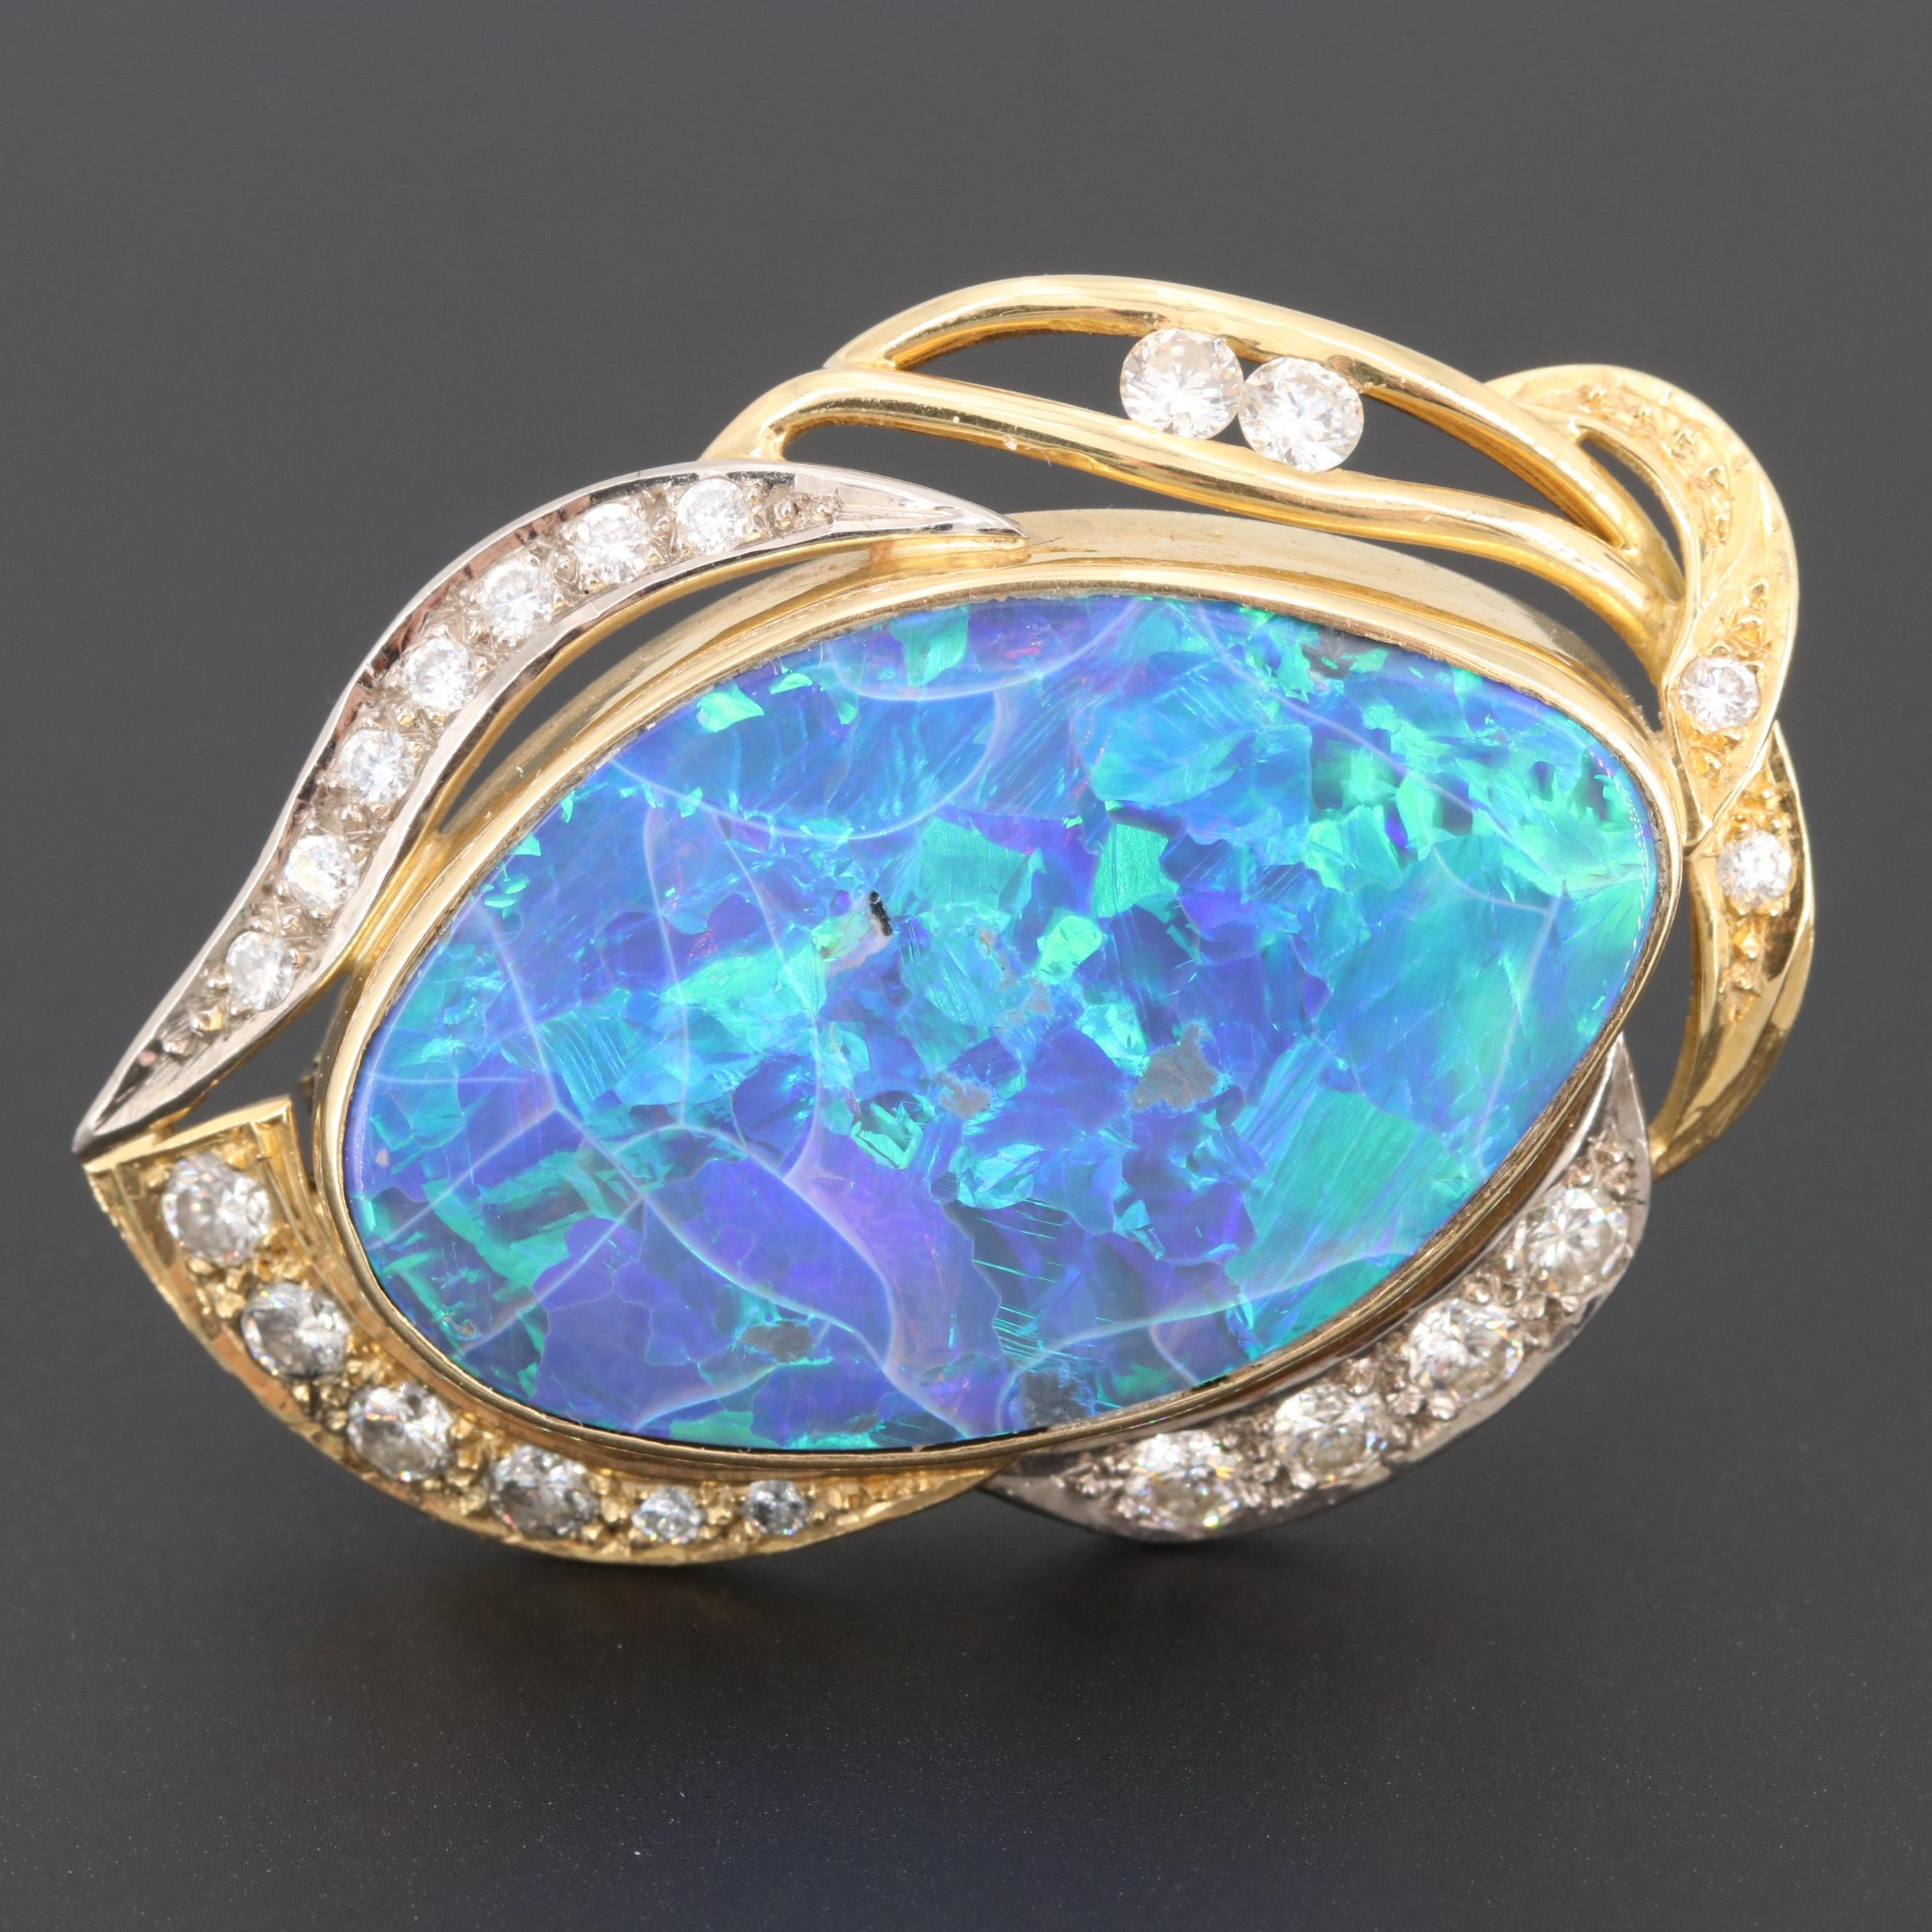 18K Yellow Gold Opal and 1.51 CTW Diamond Converter Brooch